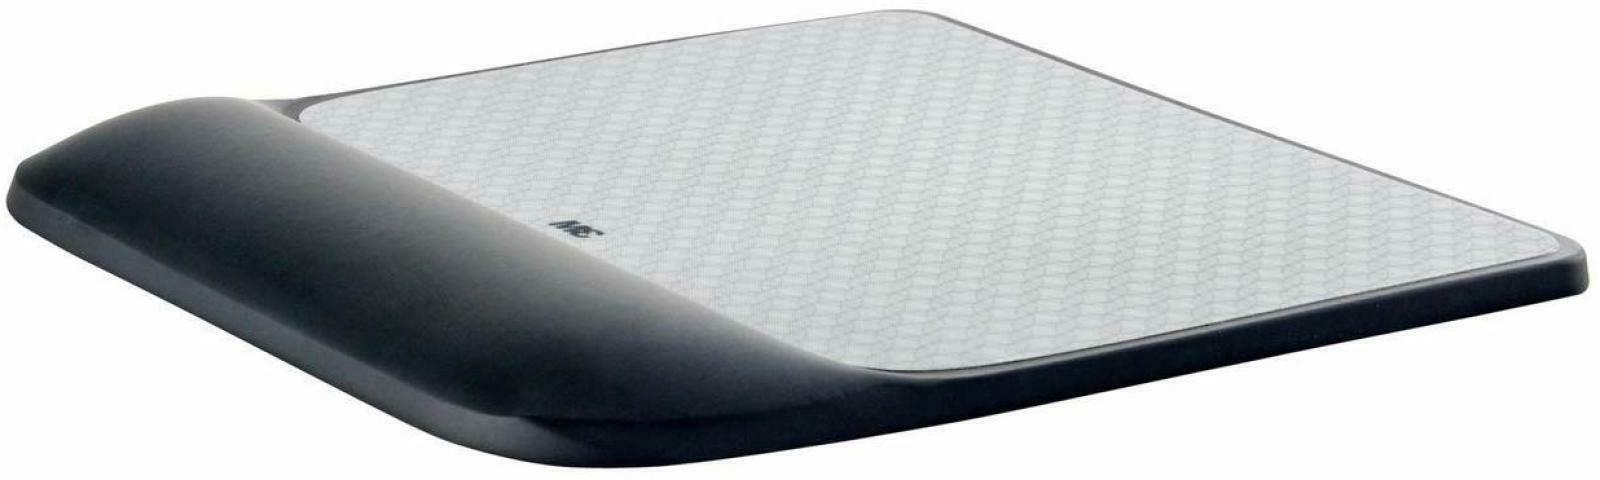 3M Precise Mouse Pad with Gel Wrist Rest, Soothing 3M Gel Te